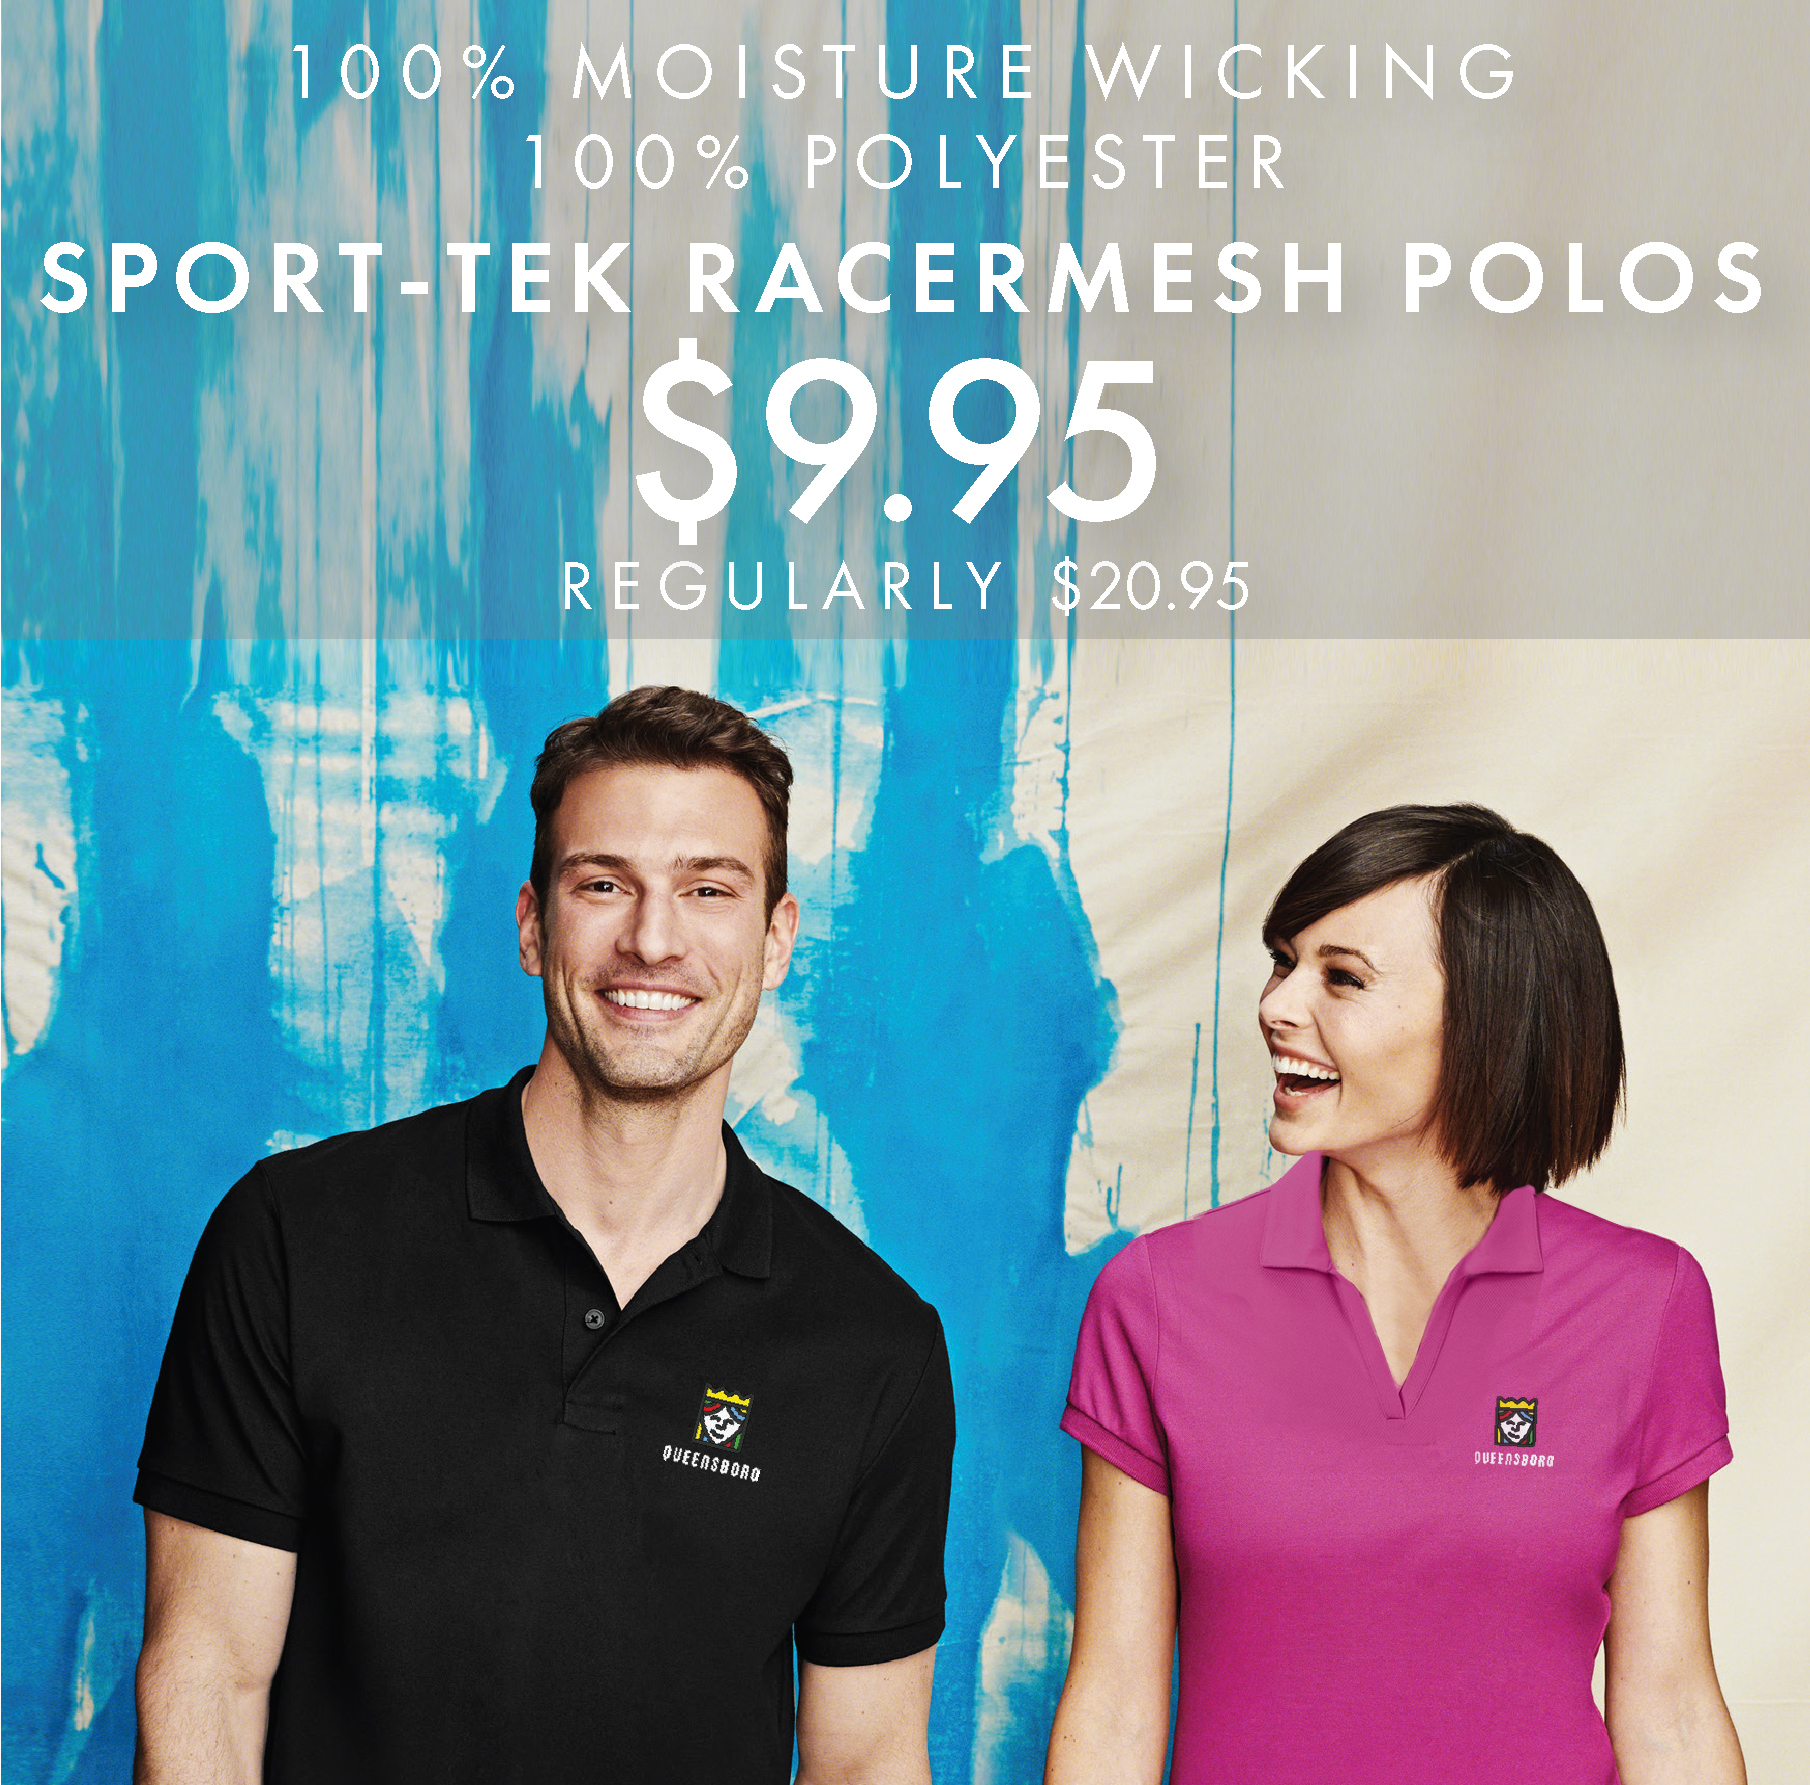 Custom Embroidered Sport-Tek Performance RacerMesh Polos